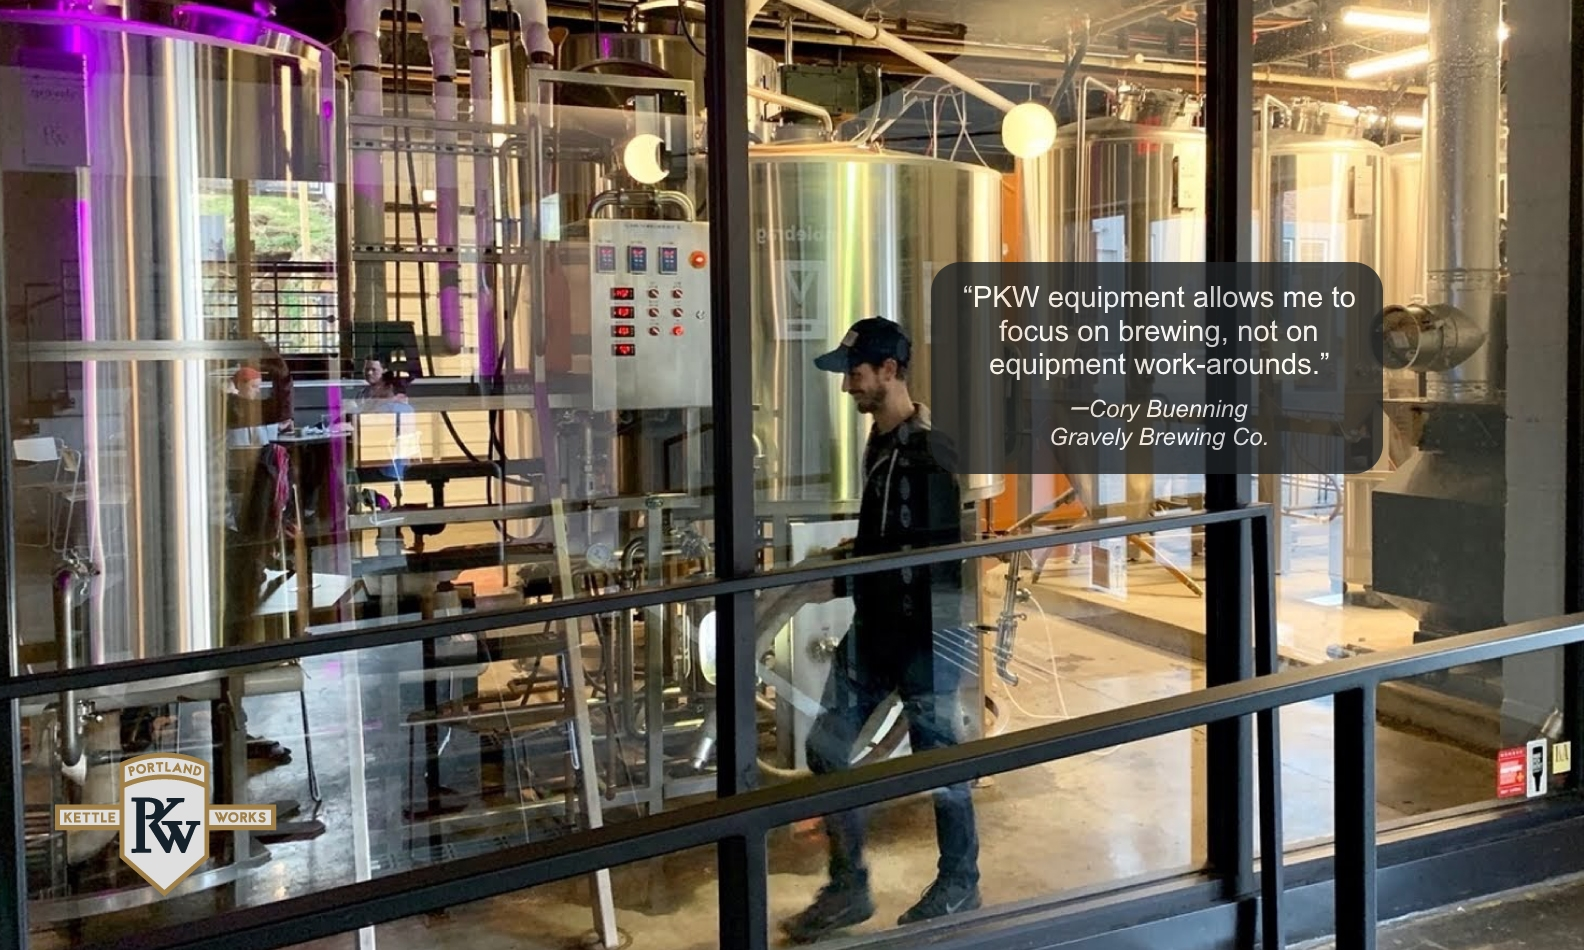 PKW Brewing Equipment at Gravely Brewery with Client Testimonial